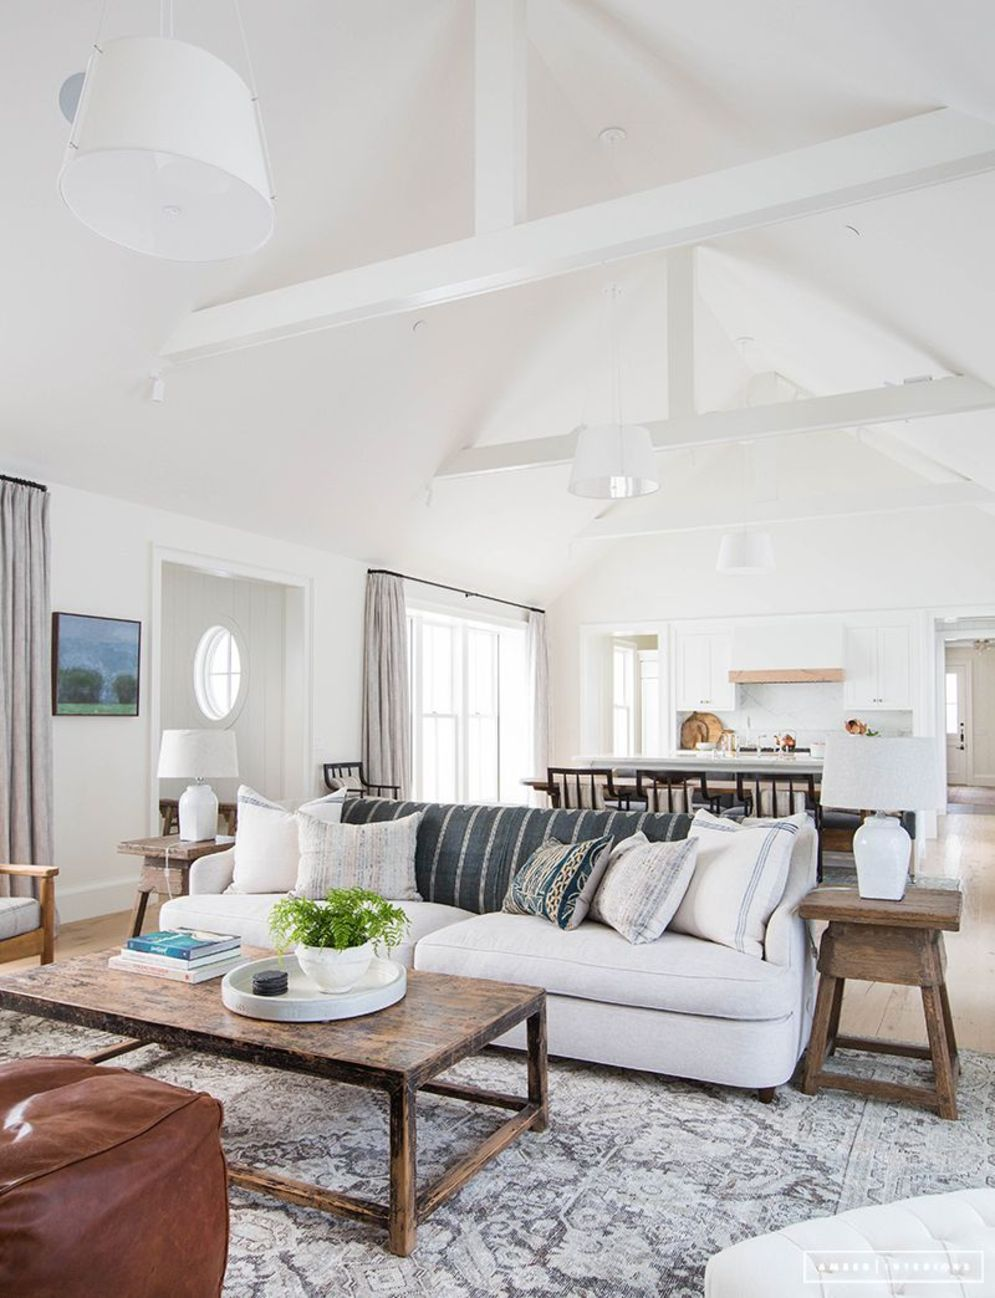 Spacious home images with vaulted ceiling showcasing grand and wonderful home design Image 28